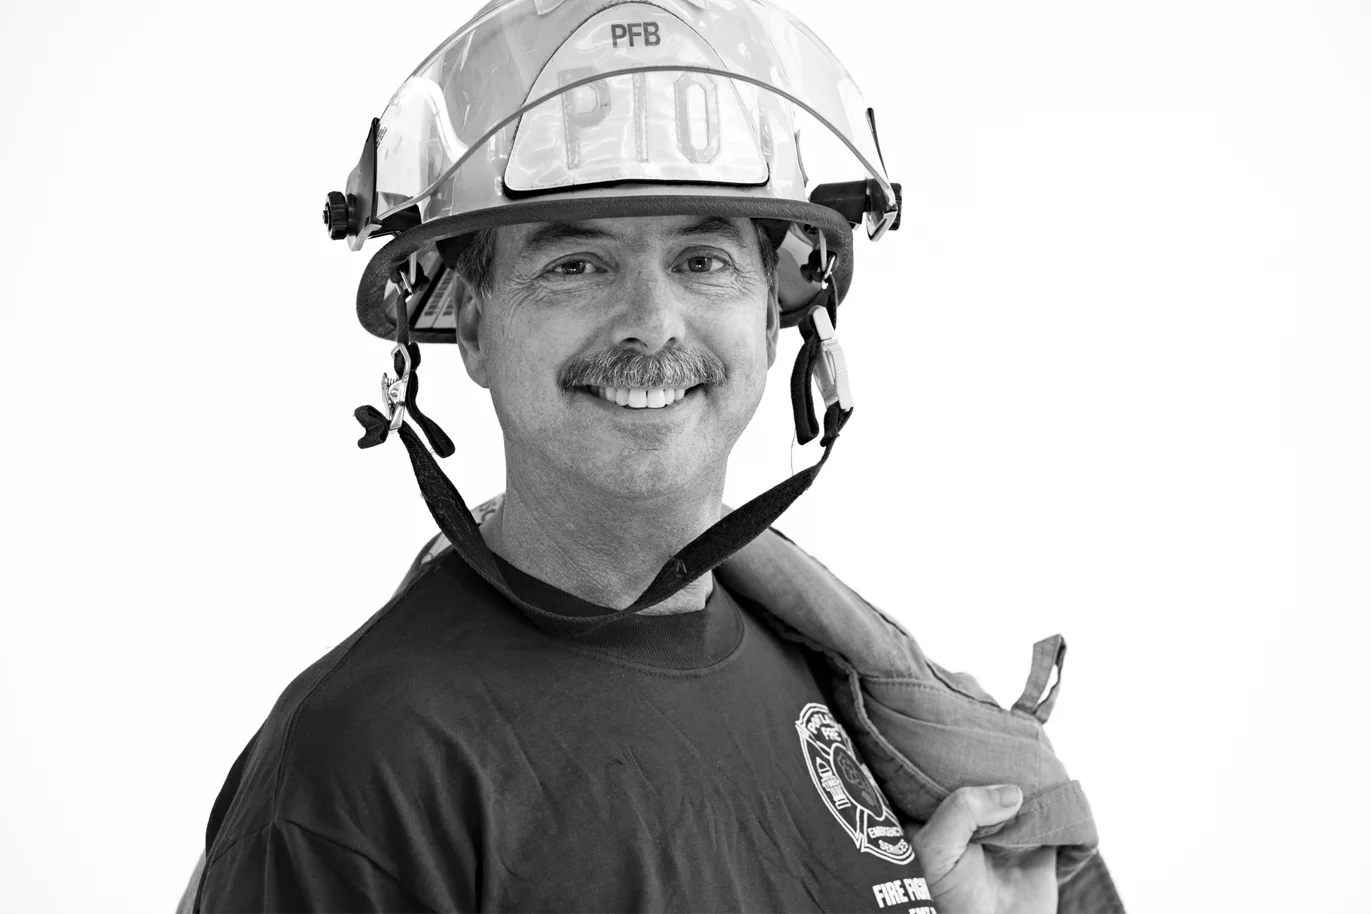 Don Porth former Director of Public Education for the Portland, Oregon, Fire and Rescue Department